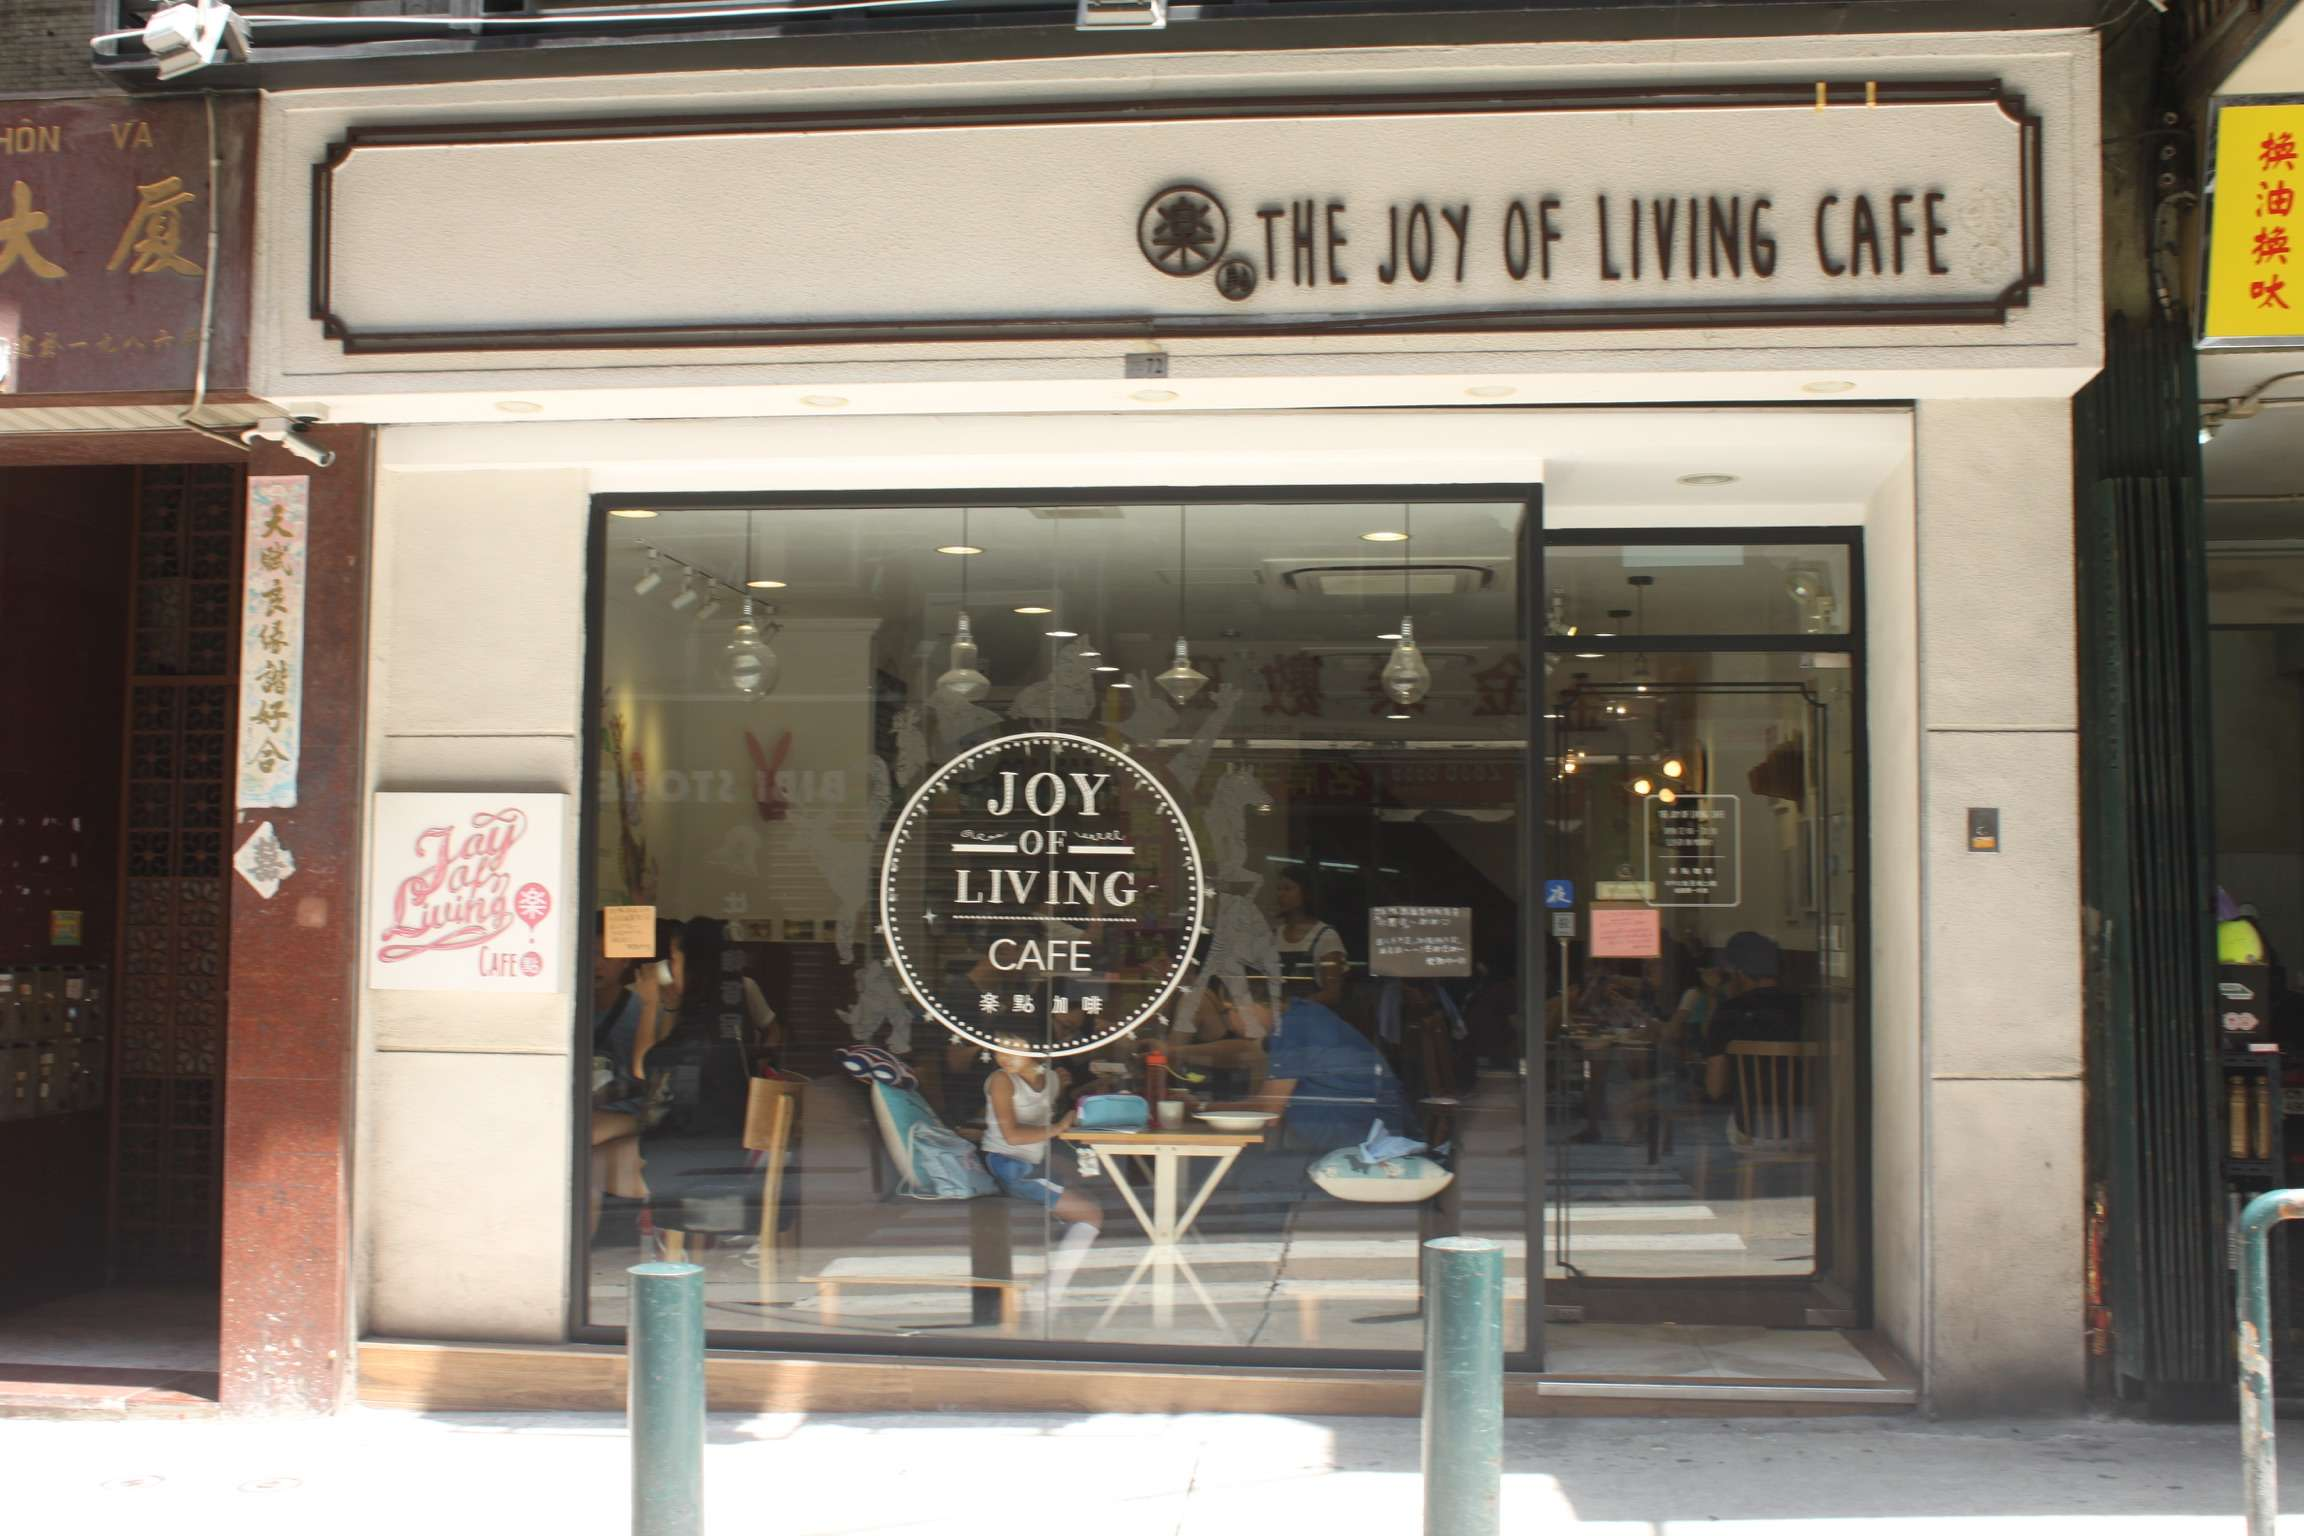 Exterior shot of the Joy of Living Cafe in Macau